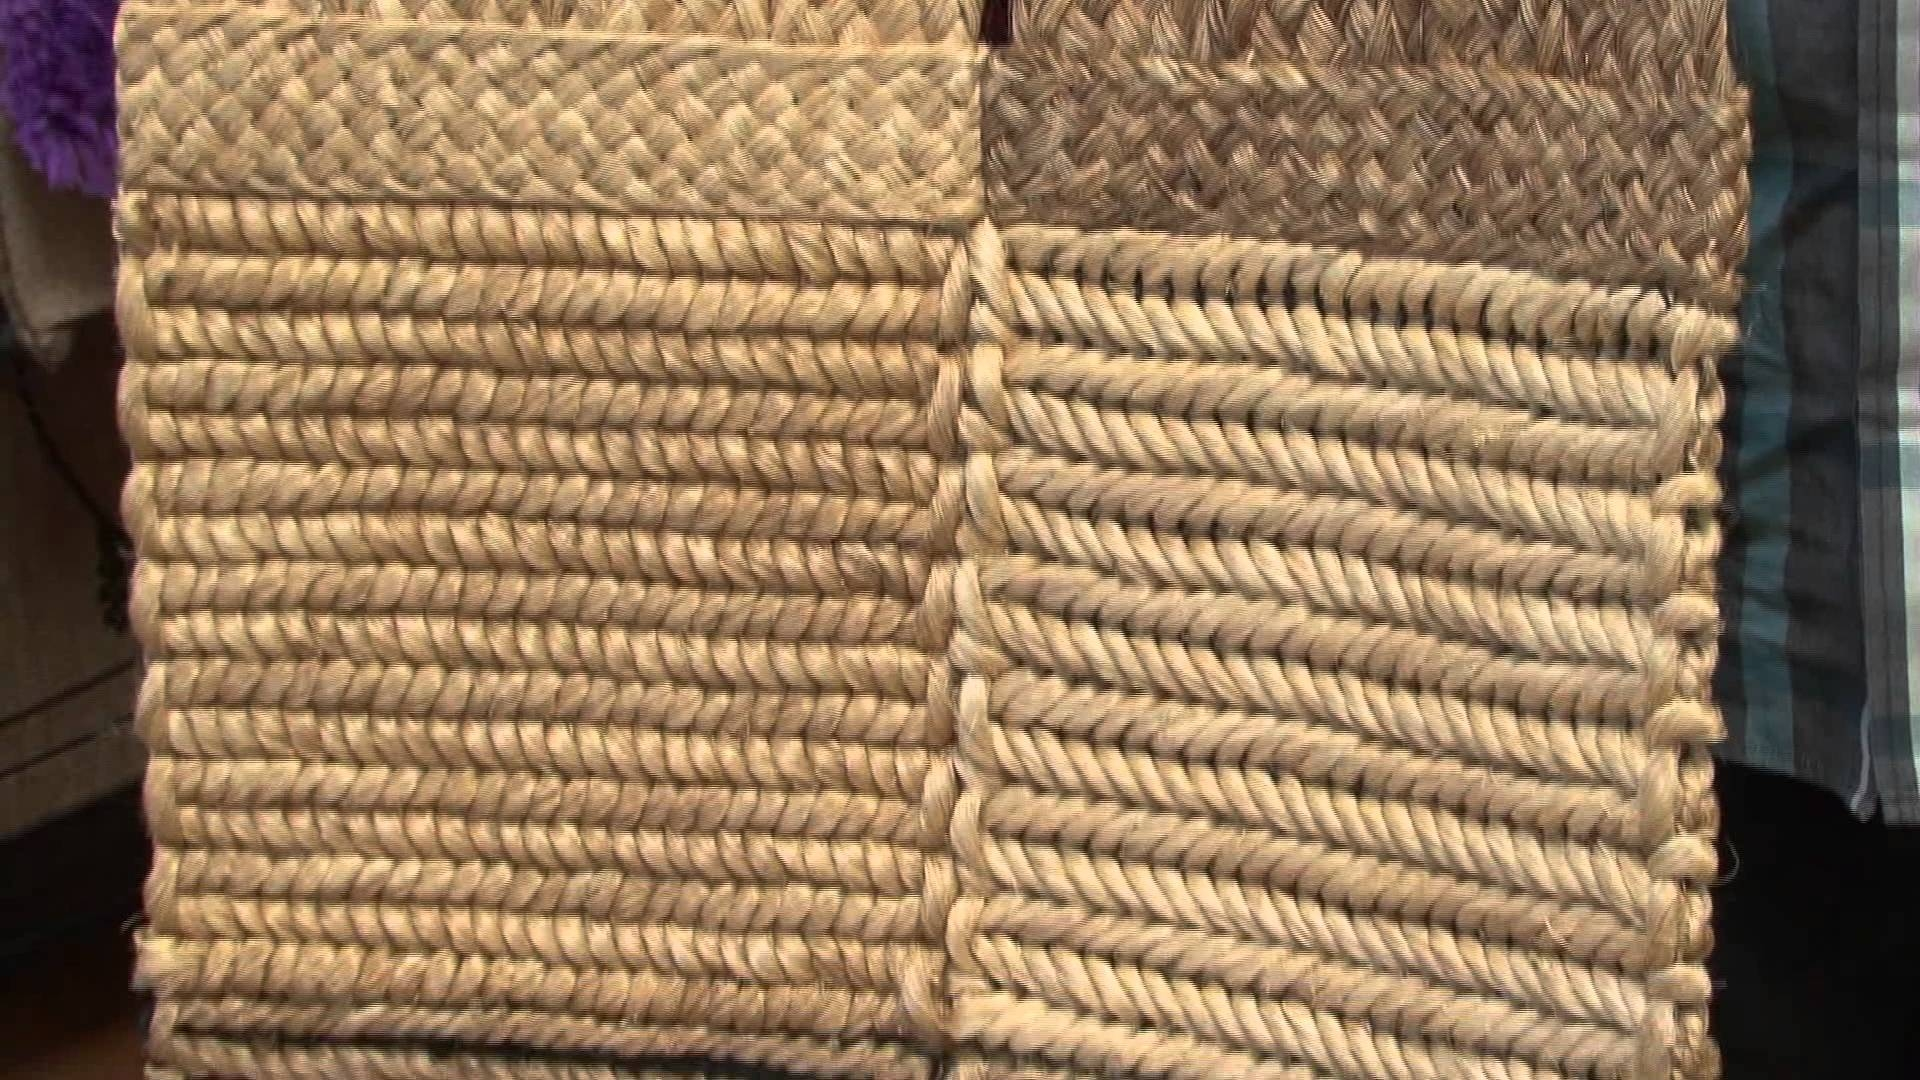 Why Buy Natural Rugs 10 Savings On Rugs Youtube Regarding Natural Rugs (Image 15 of 15)